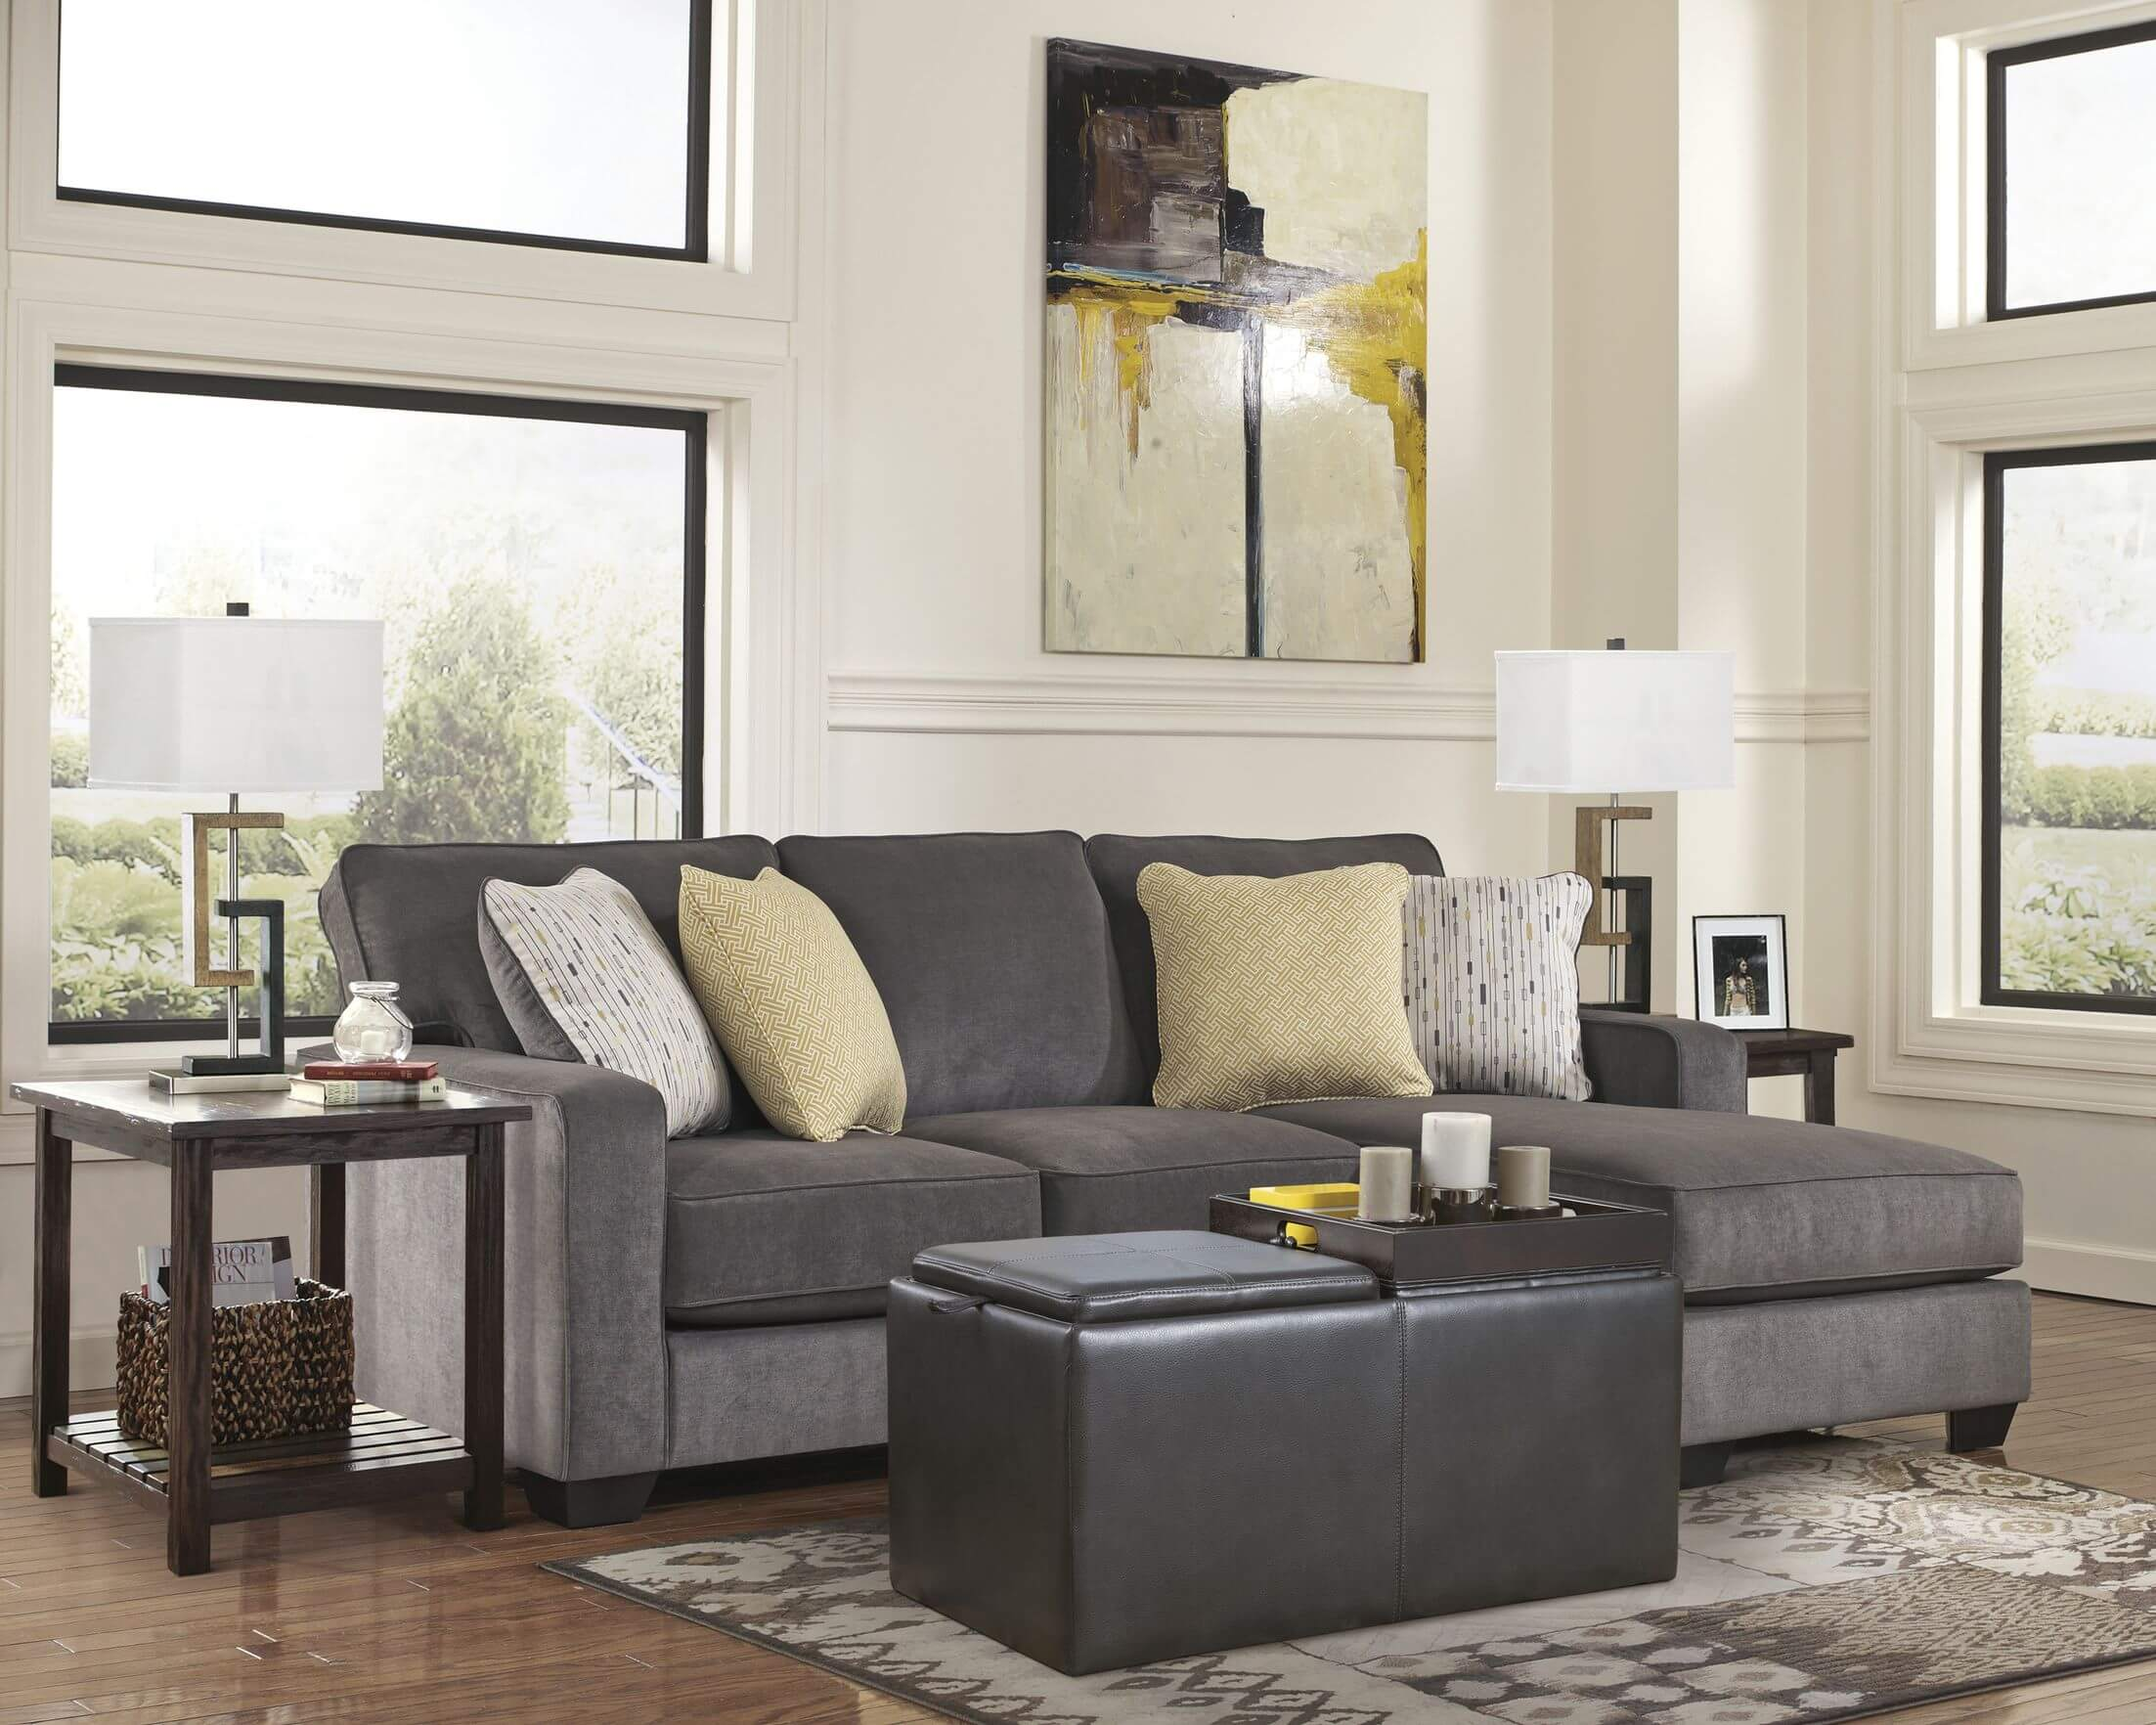 crawford clearance sectionals to beachside denim go leather sleeper own your rooms full size couches sofas sectional of set design cindy sofa